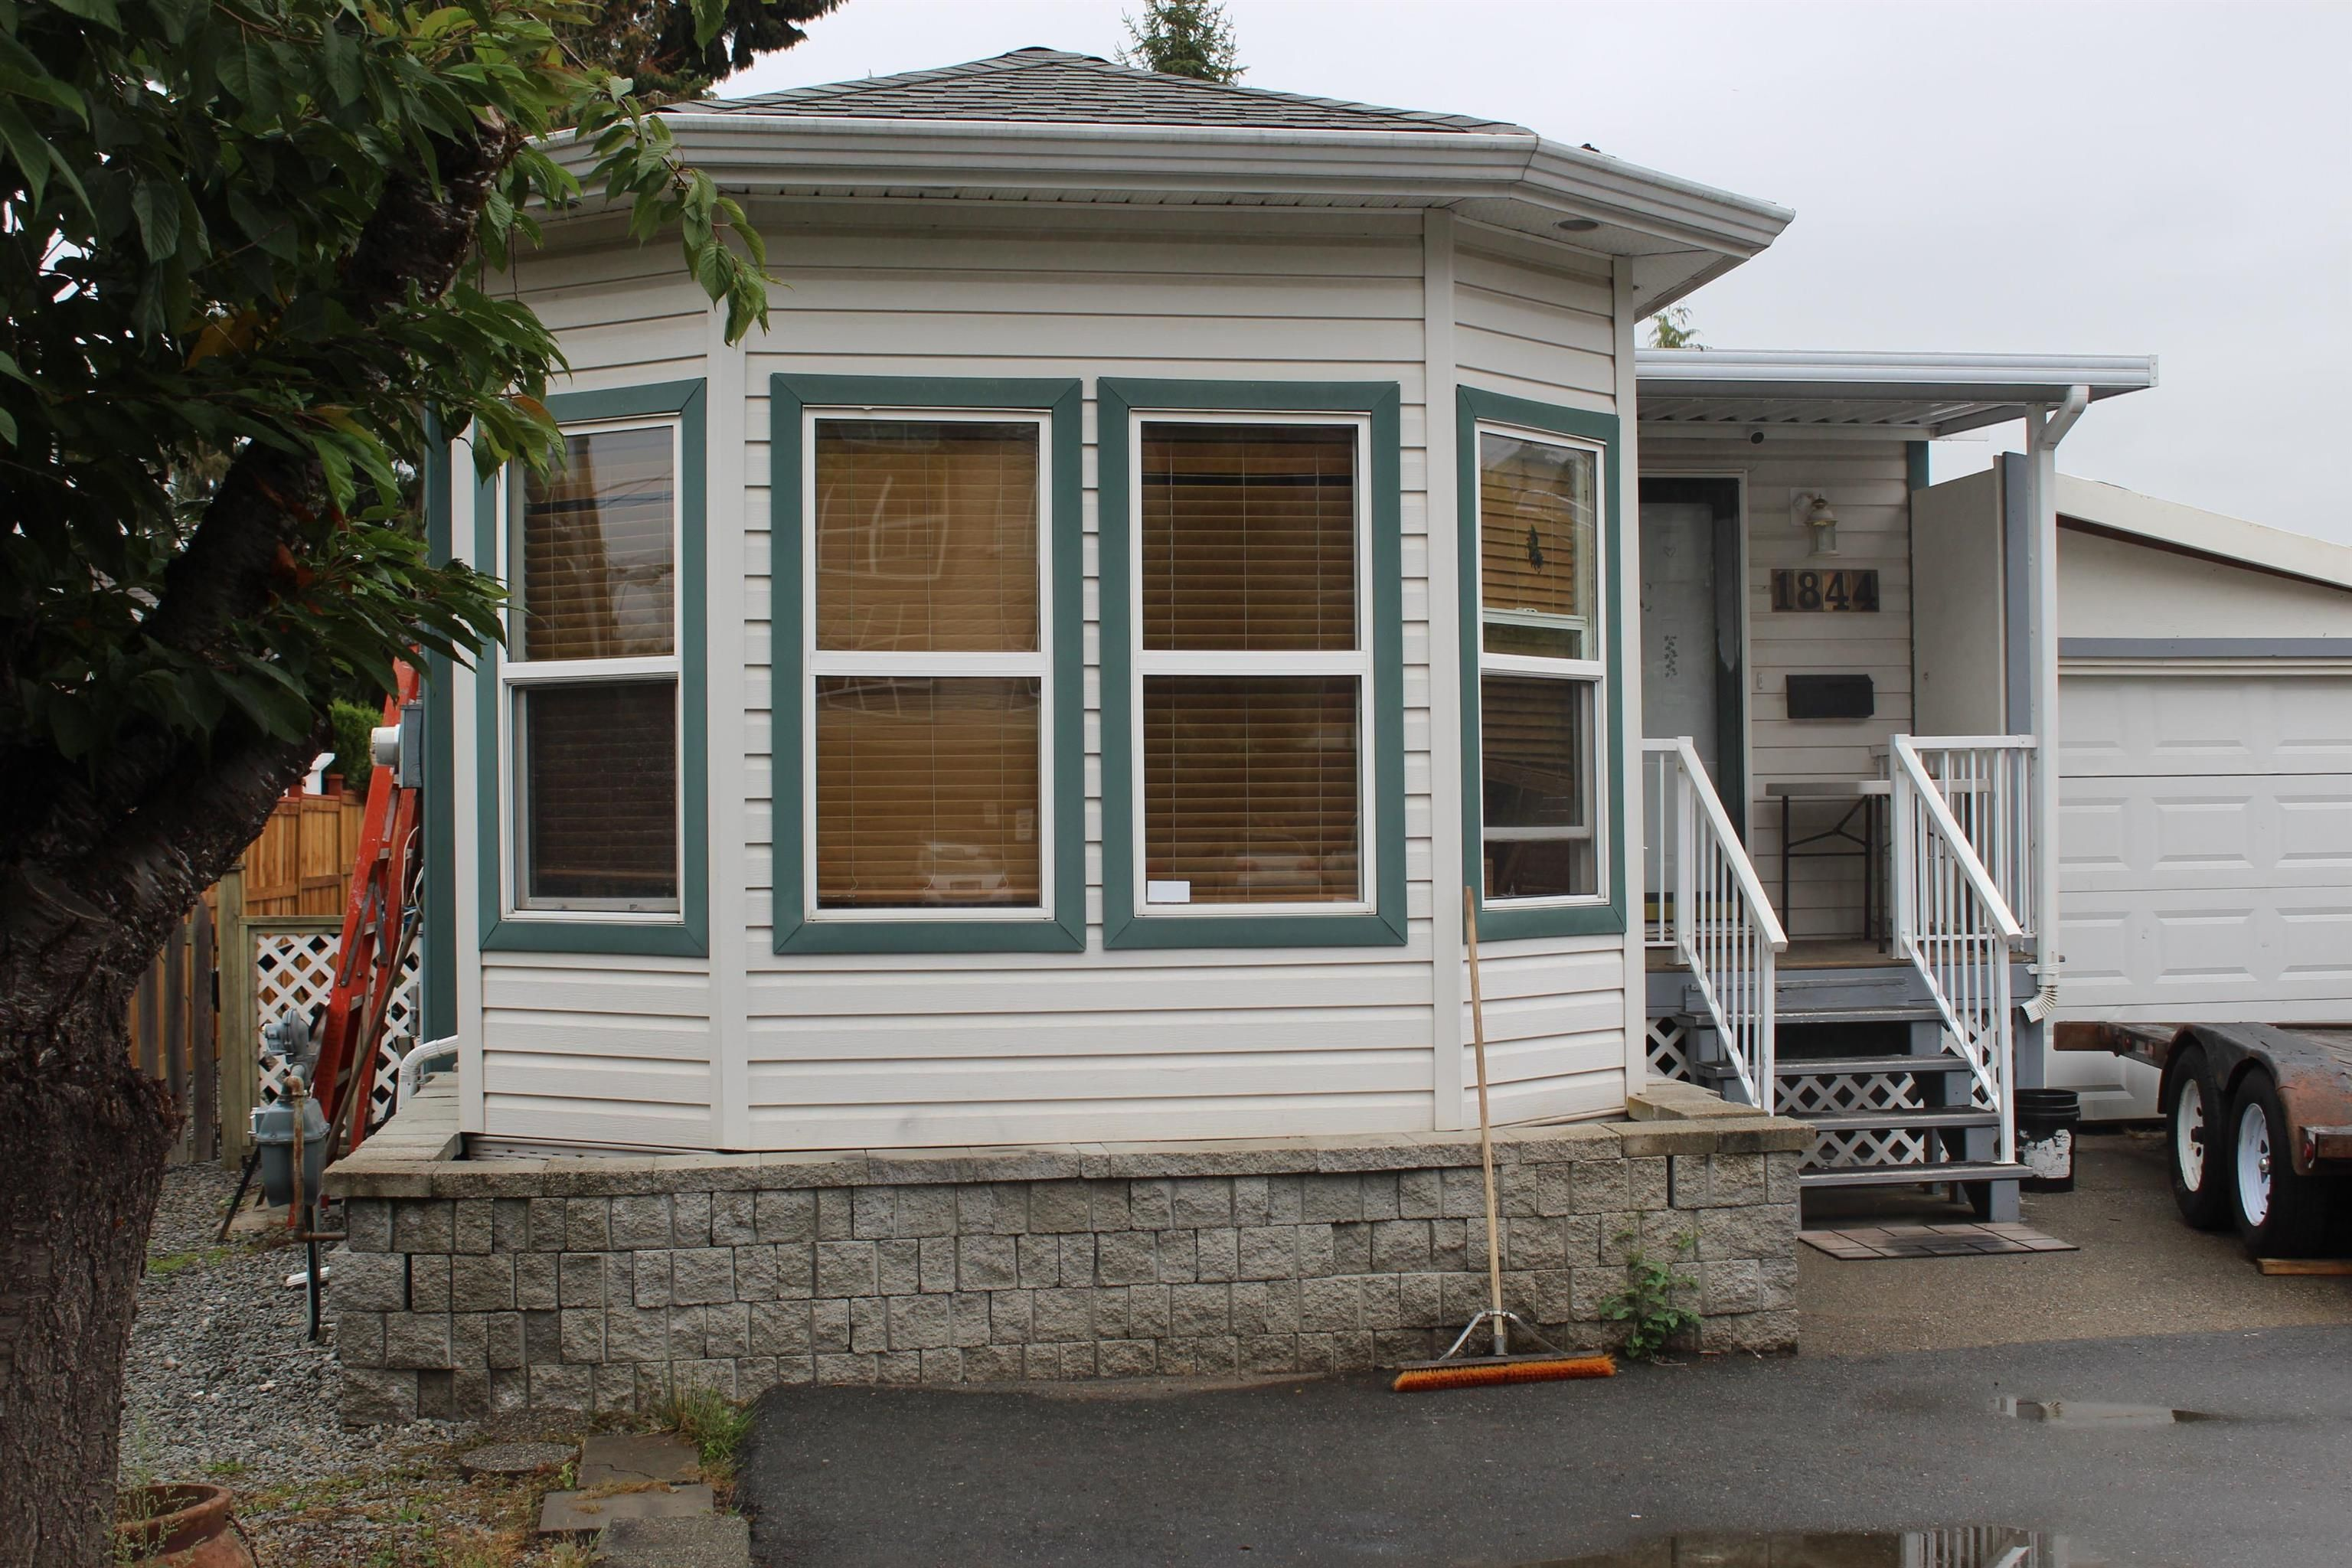 Main Photo: 1844 SALTON Road in Abbotsford: Central Abbotsford Manufactured Home for sale : MLS®# R2611525